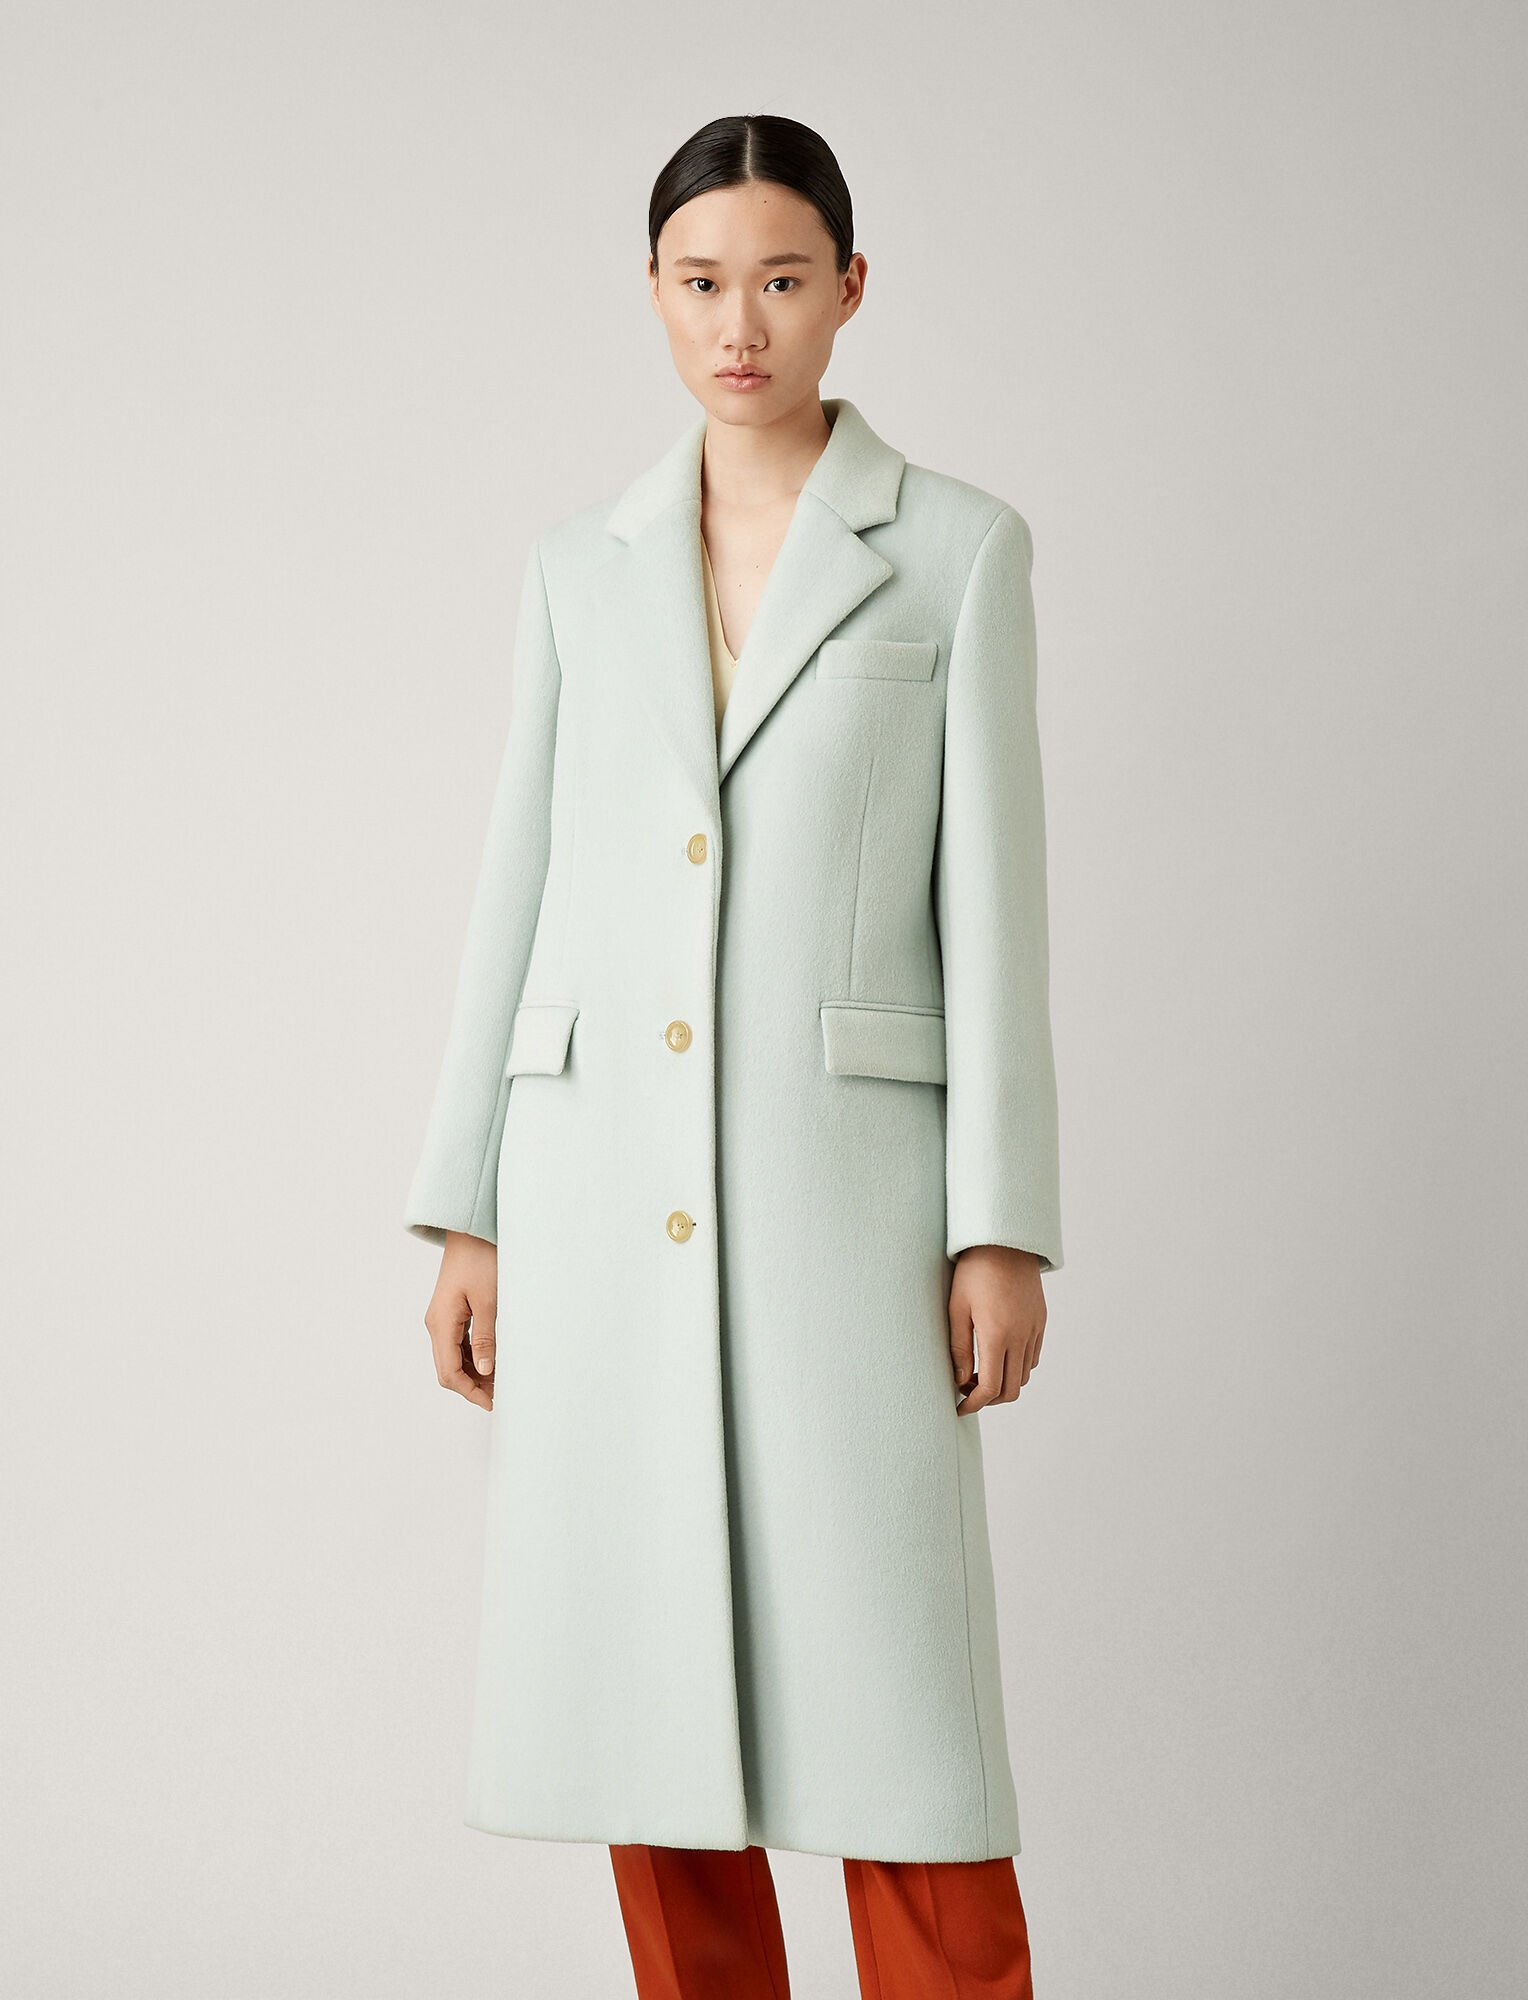 Joseph, March Wool Coat, in DUCK EGG